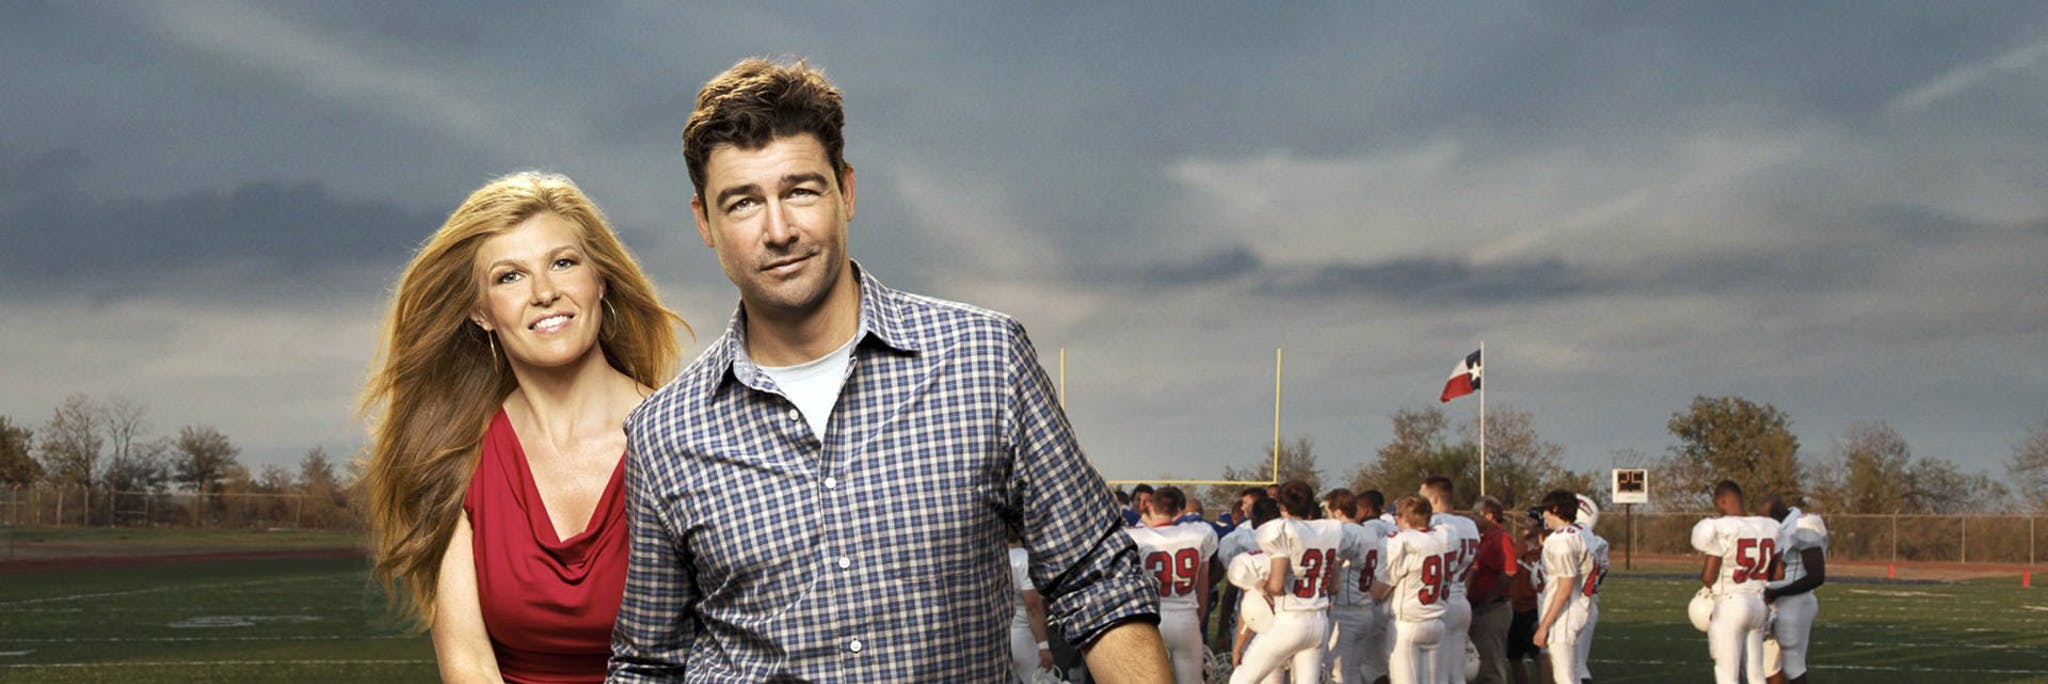 friday night lights music soundtrack season 3  friday night lights soundtrack